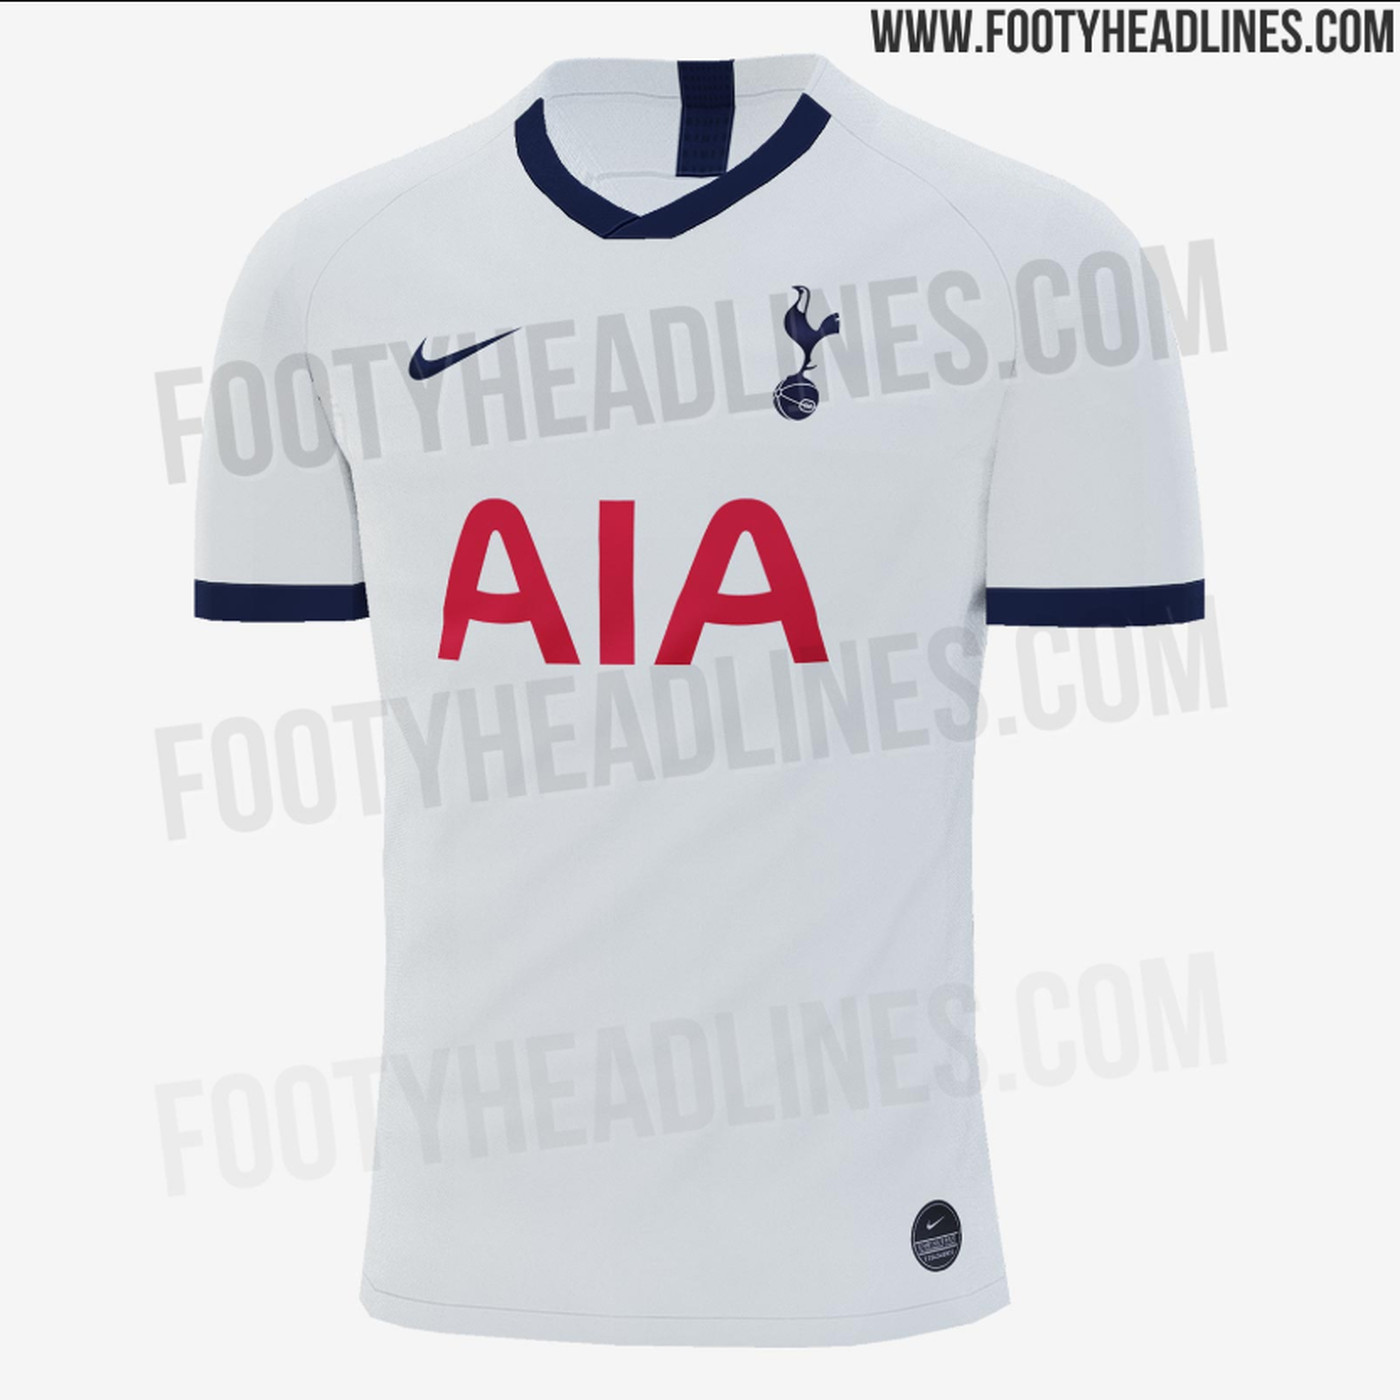 Tottenham S 2019 20 Home Kits Leak And This Time They Aren T Flashy Cartilage Free Captain